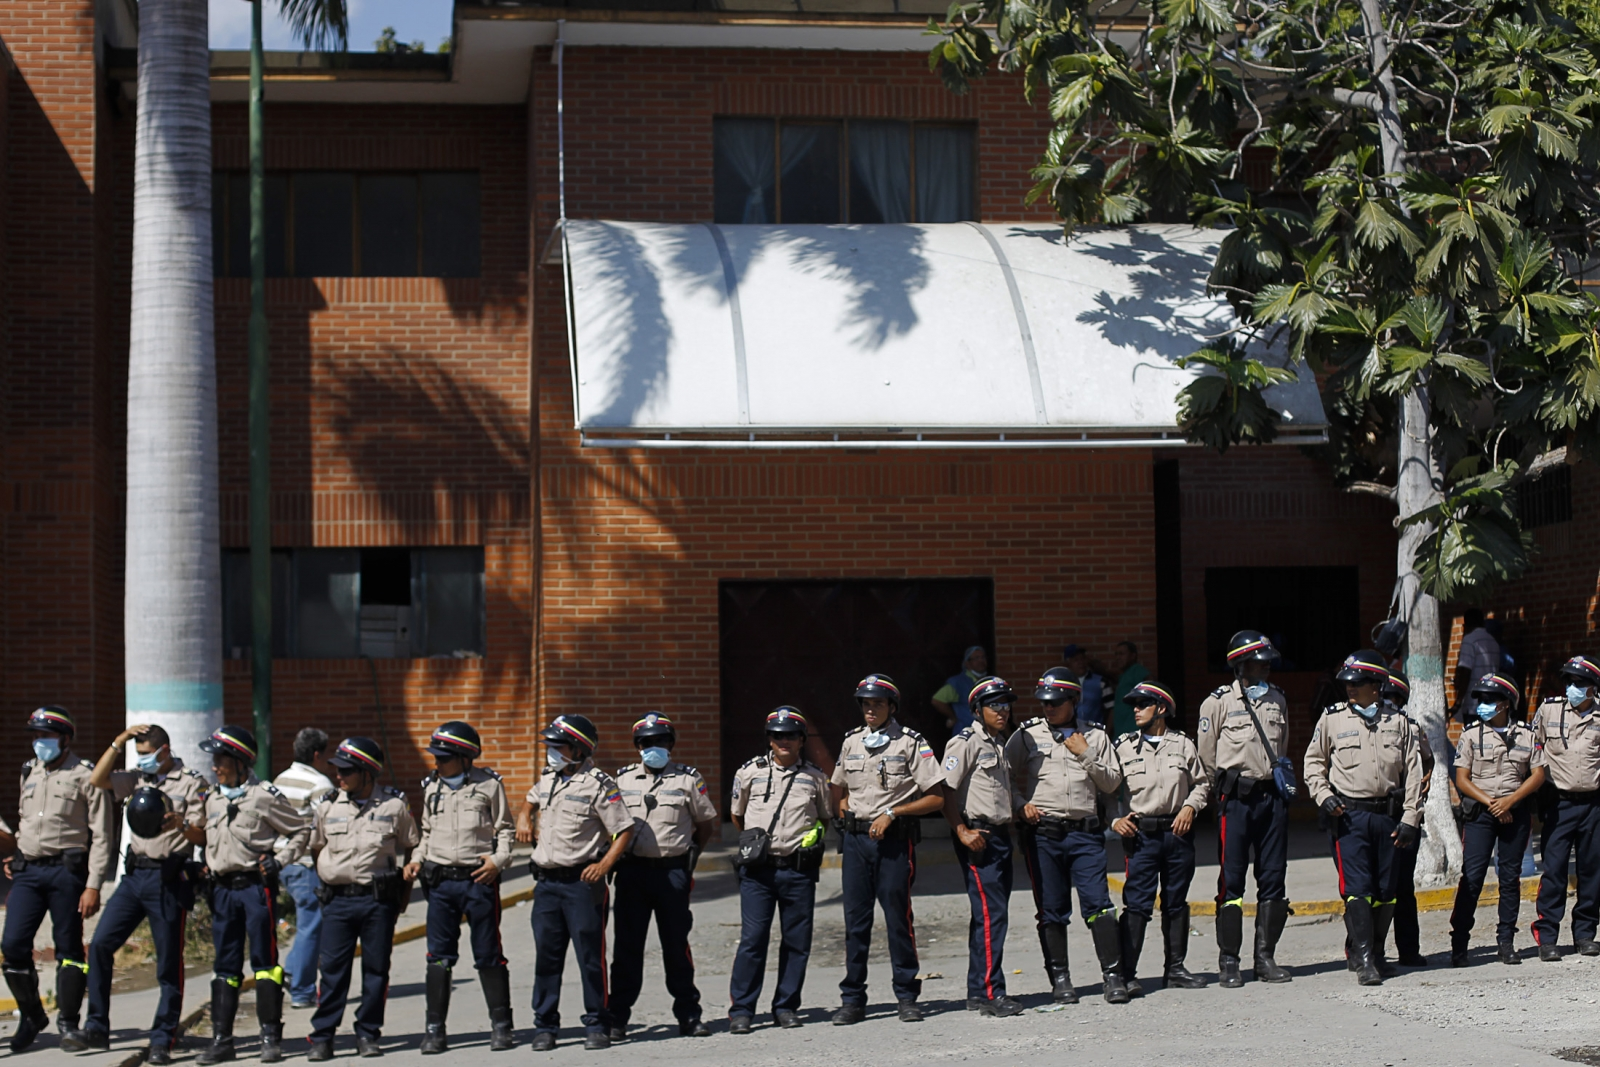 Venezuelan riot police stand guard in front of the morgue in Barquisimeto